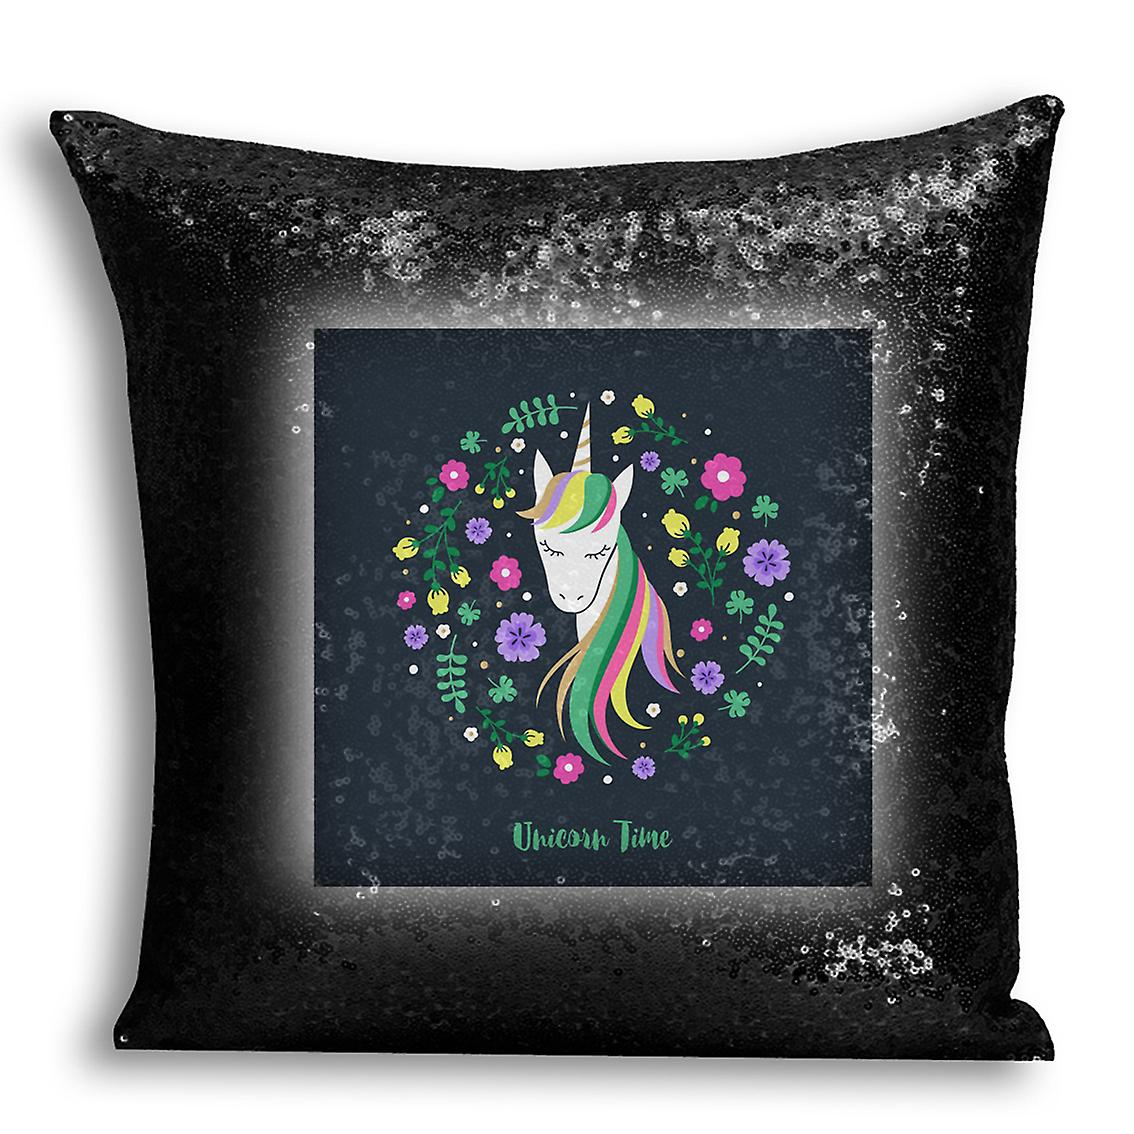 Home CushionPillow Decor Sequin Cover Inserted 15 Black For Design tronixsUnicorn Printed With I 0wyvON8nm